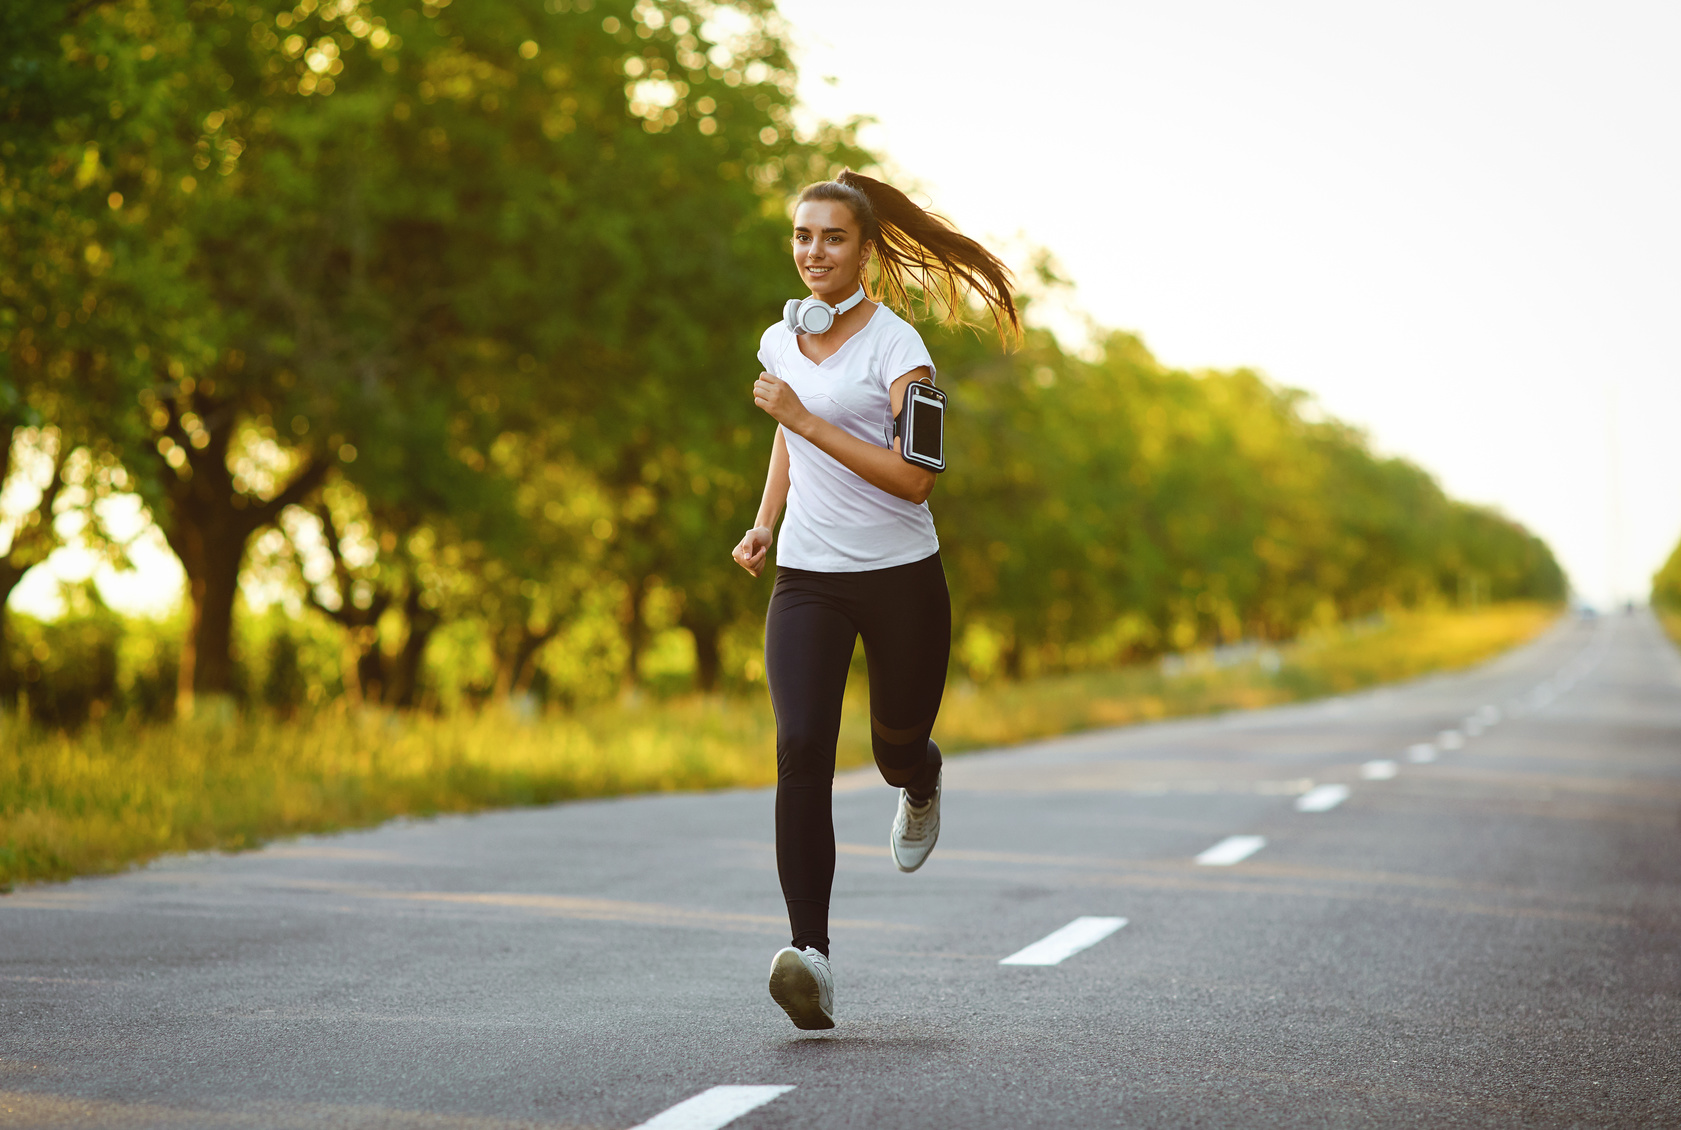 stay safe when running in hot weather